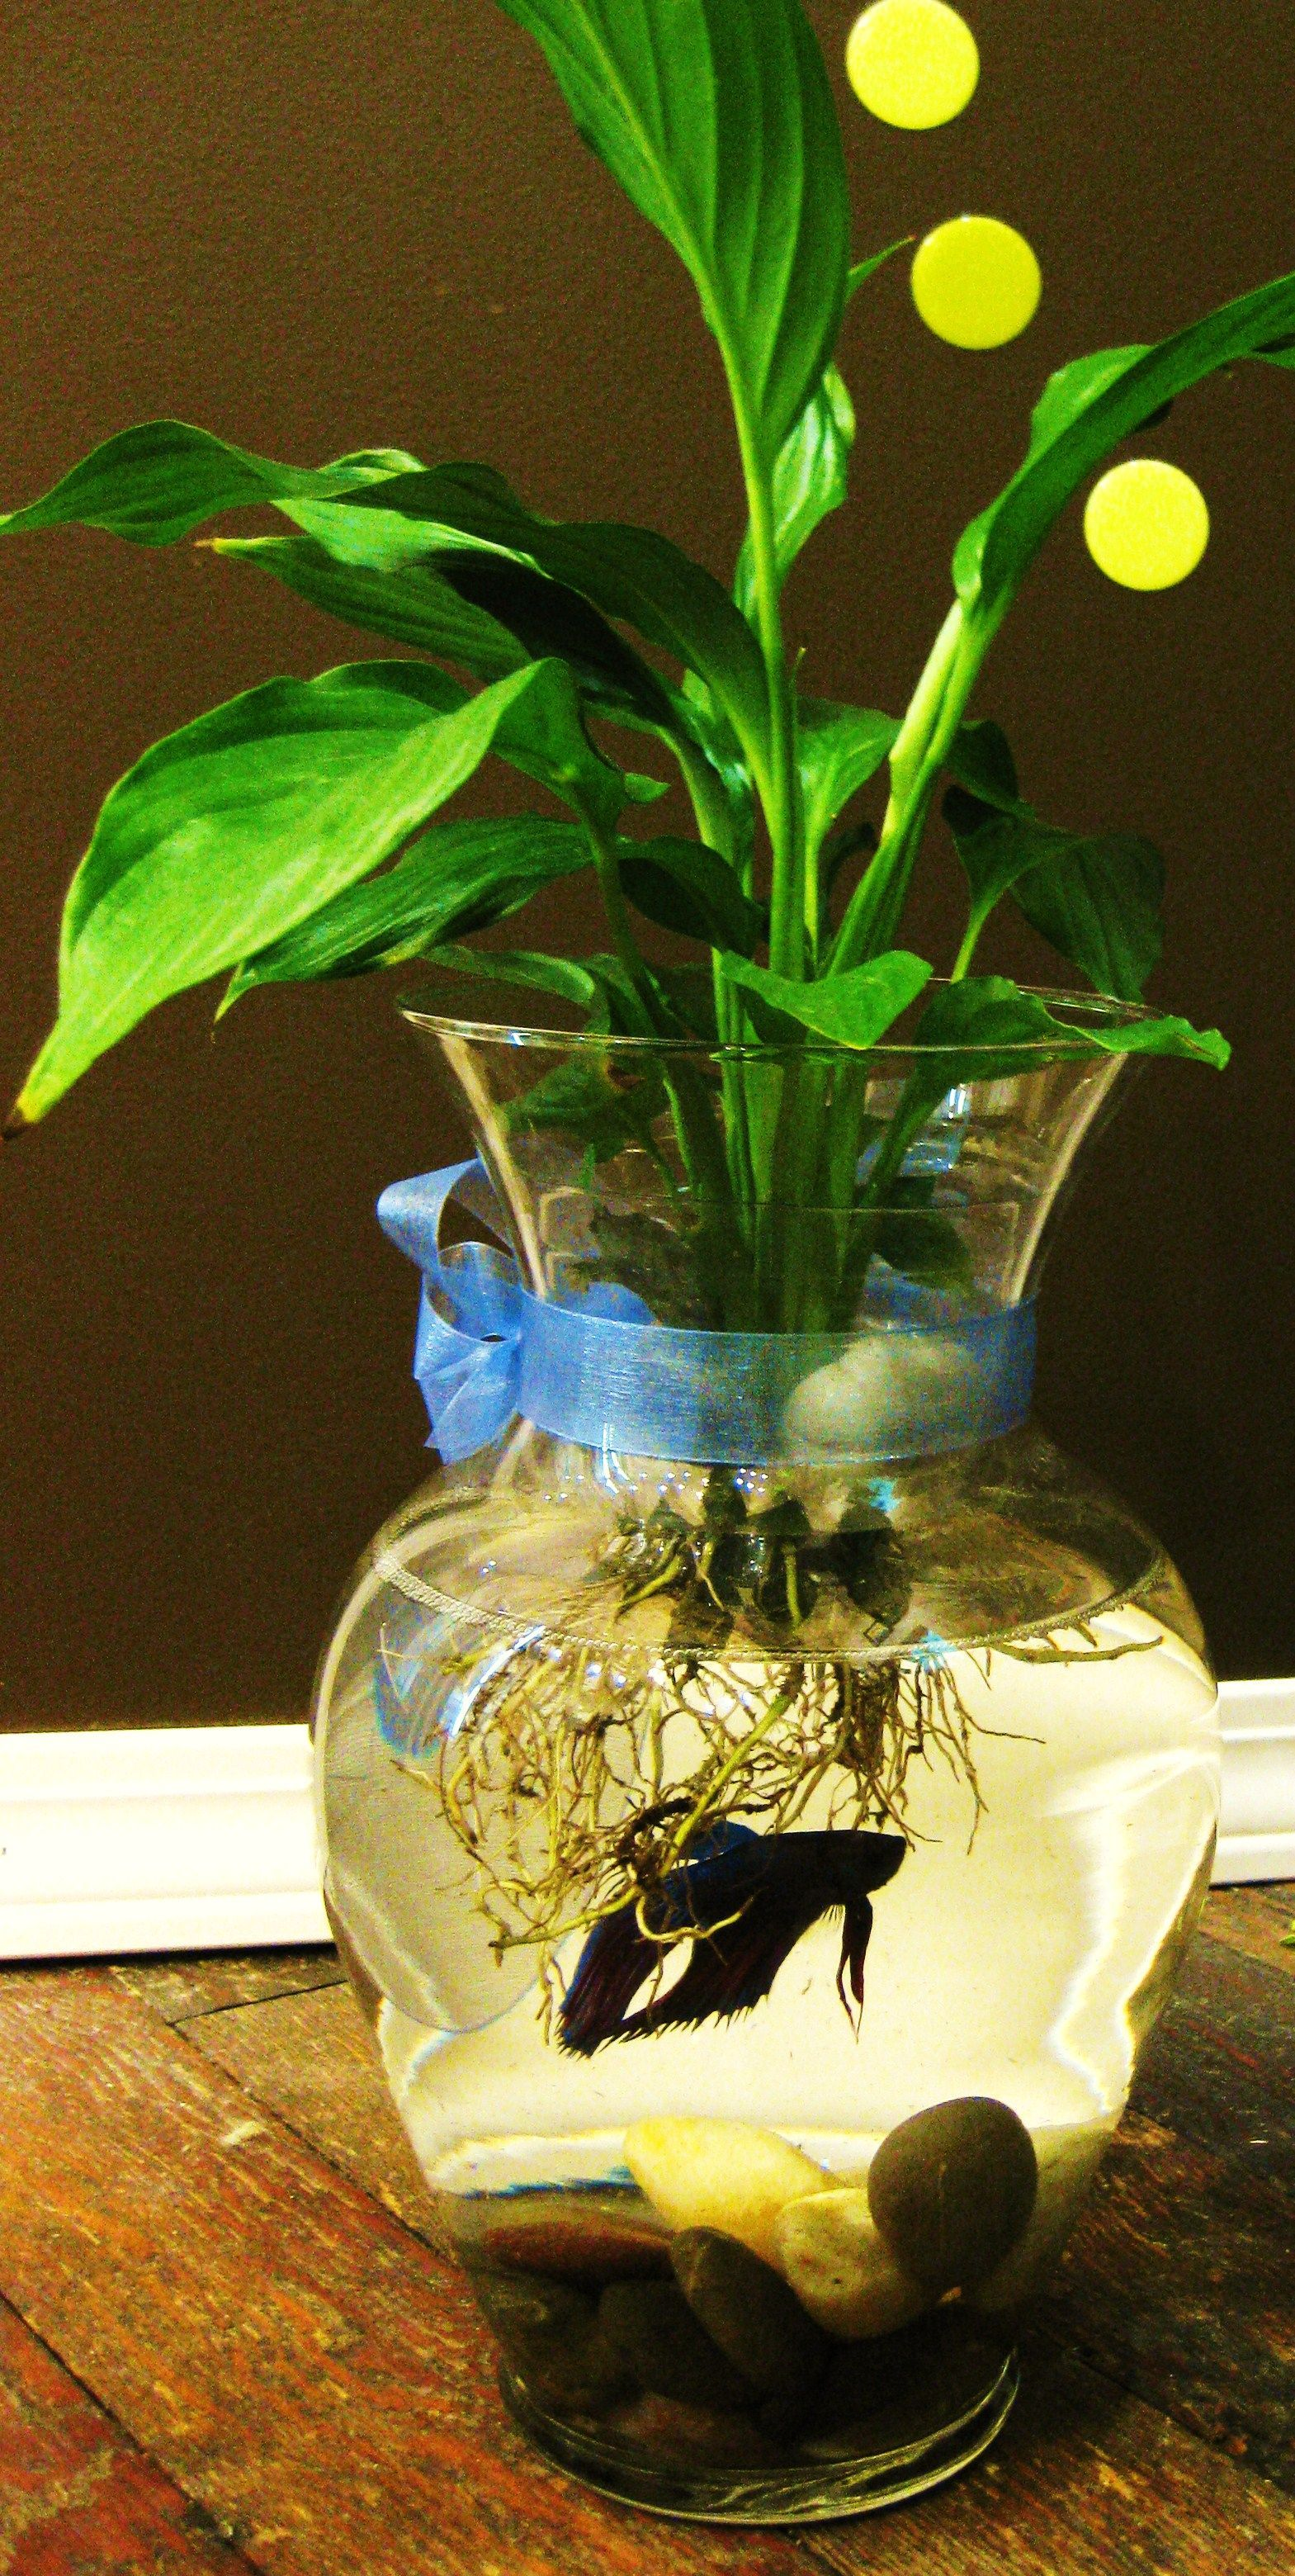 Fighting Fish Bowls With Peace Lily Or Lucky Bamboo #Aquaponicbetta